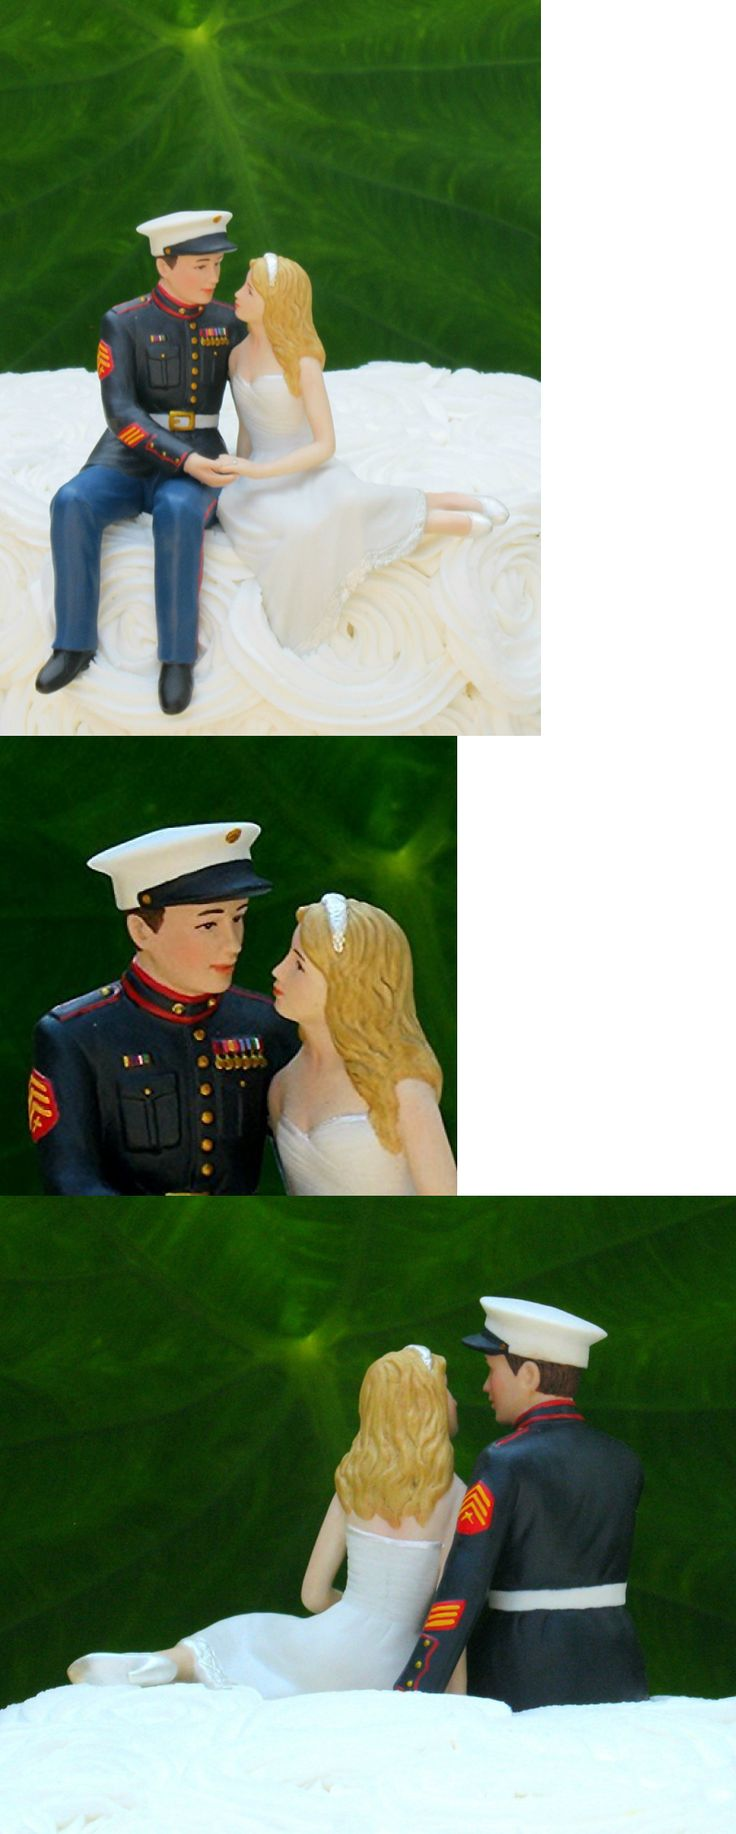 Wedding Cakes Toppers: Marine Corps Wedding Cake Topper By Magical Day -> BUY IT NOW ONLY: $36.99 on eBay!